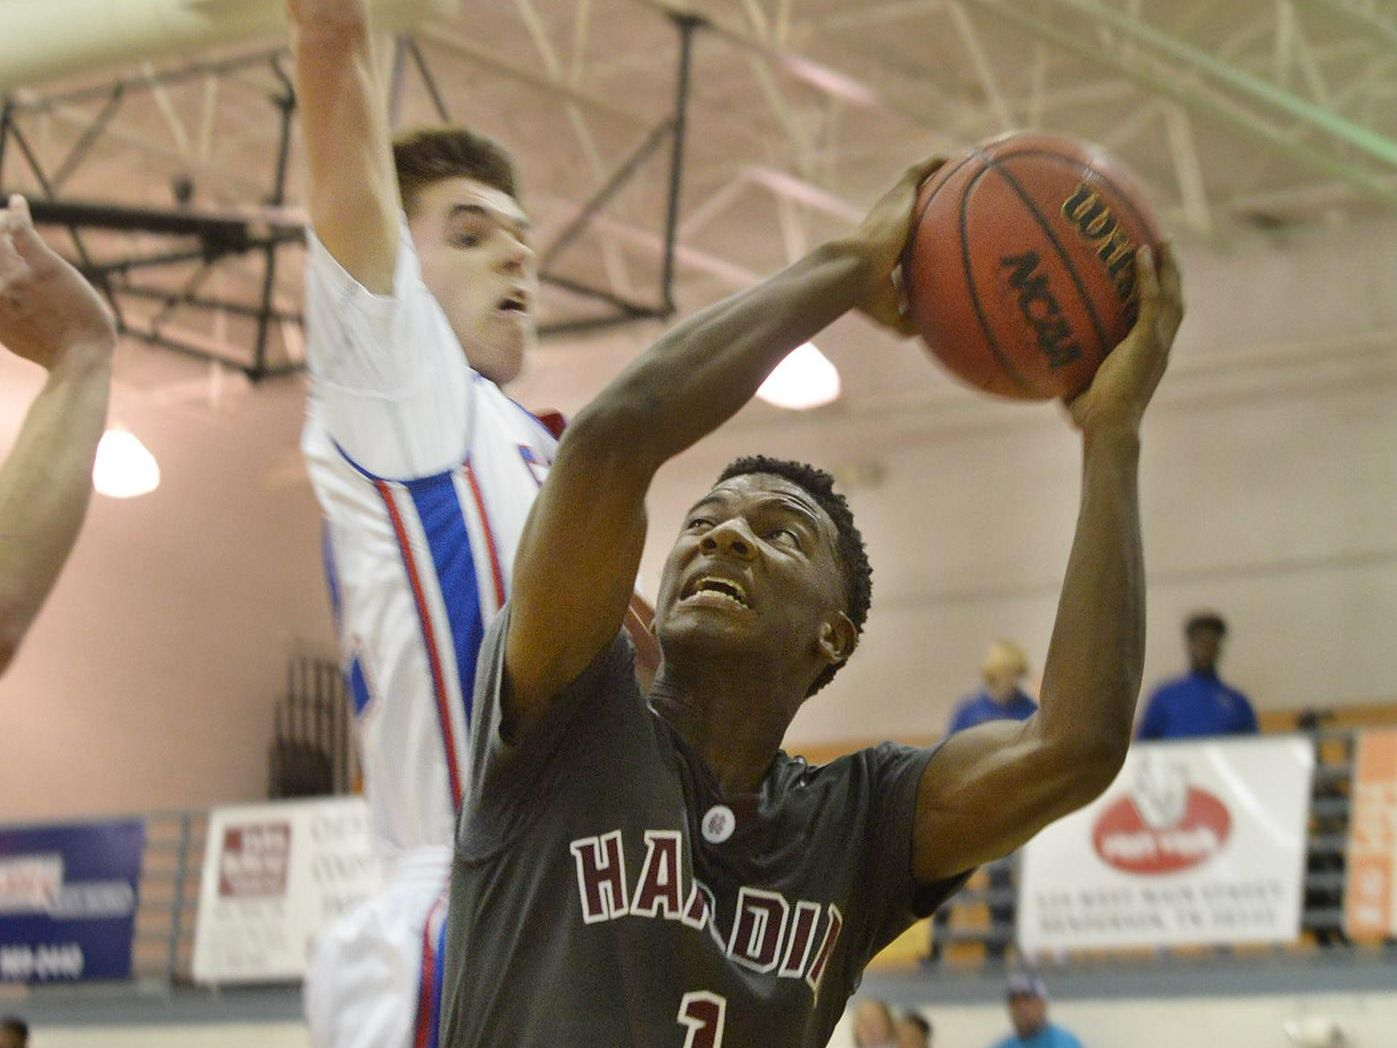 Hardin County's Antonio Davis goes up for a shot as a Chester County defender attempts to block his shot during their game Thursday evening.